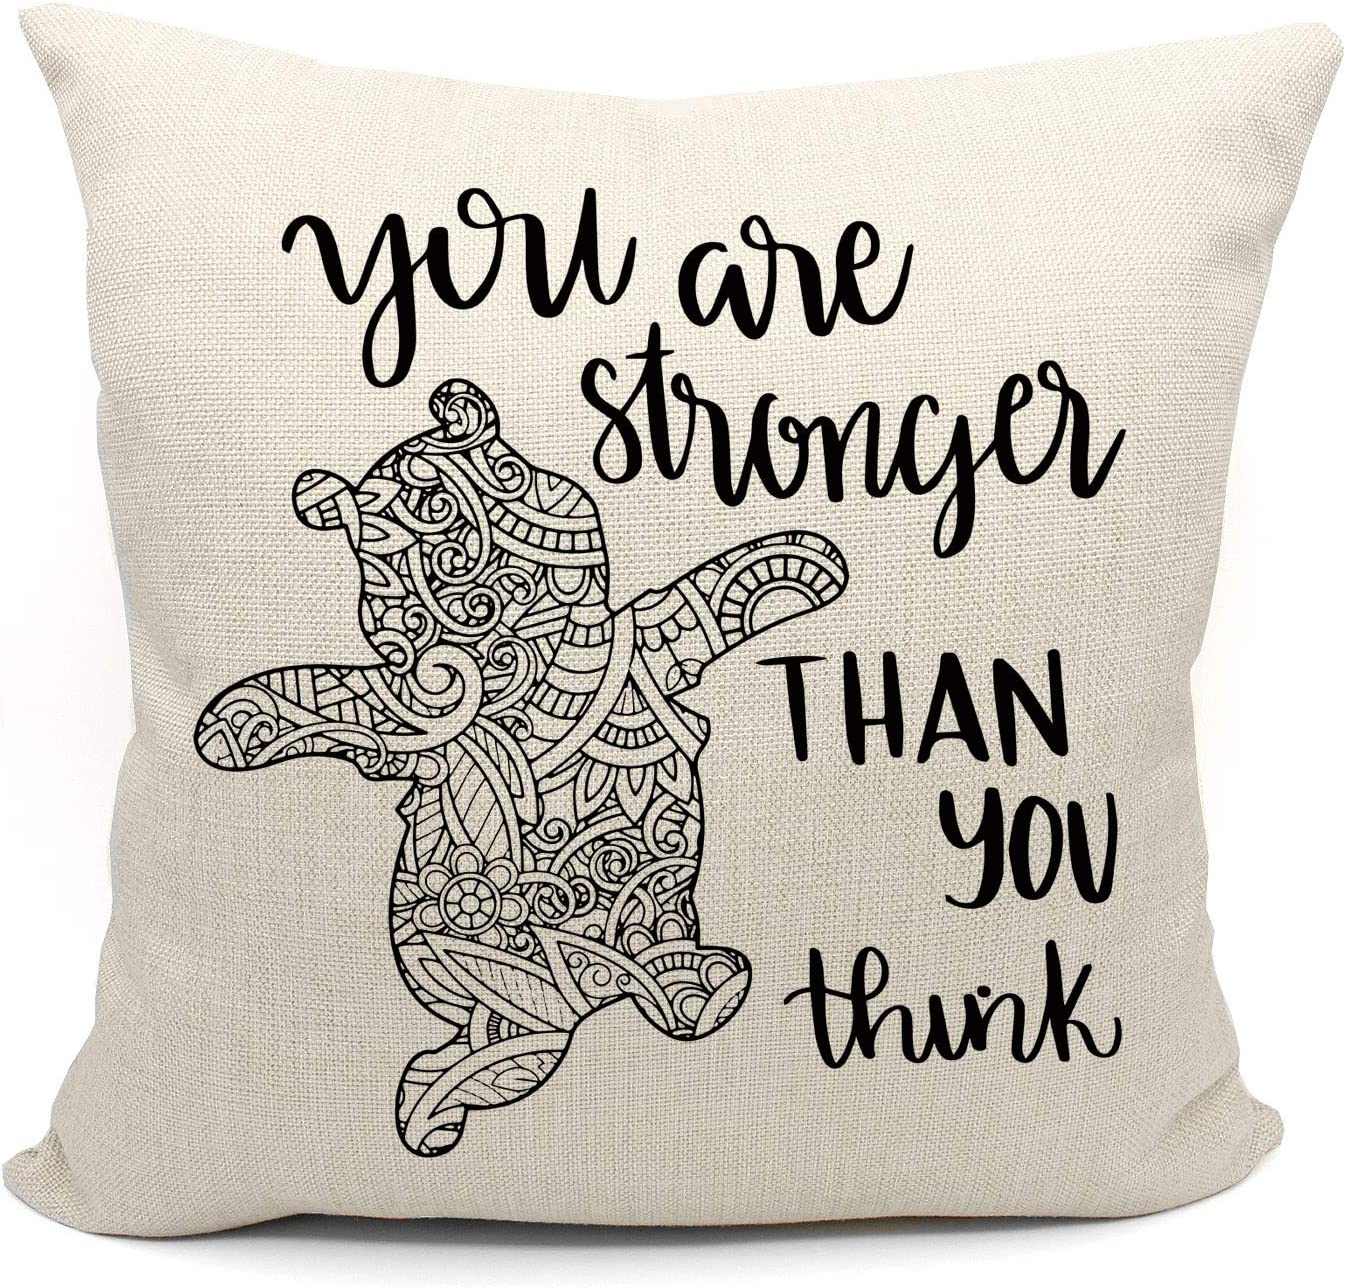 Inspirational Quotes You are Stronger Than You Think Throw Pillow Case, Daughter, Son Gifts from Mom and Dad, 18 x 18 Inch Winnie The Pooh Decor Linen Cushion Cover for Sofa Couch Bed